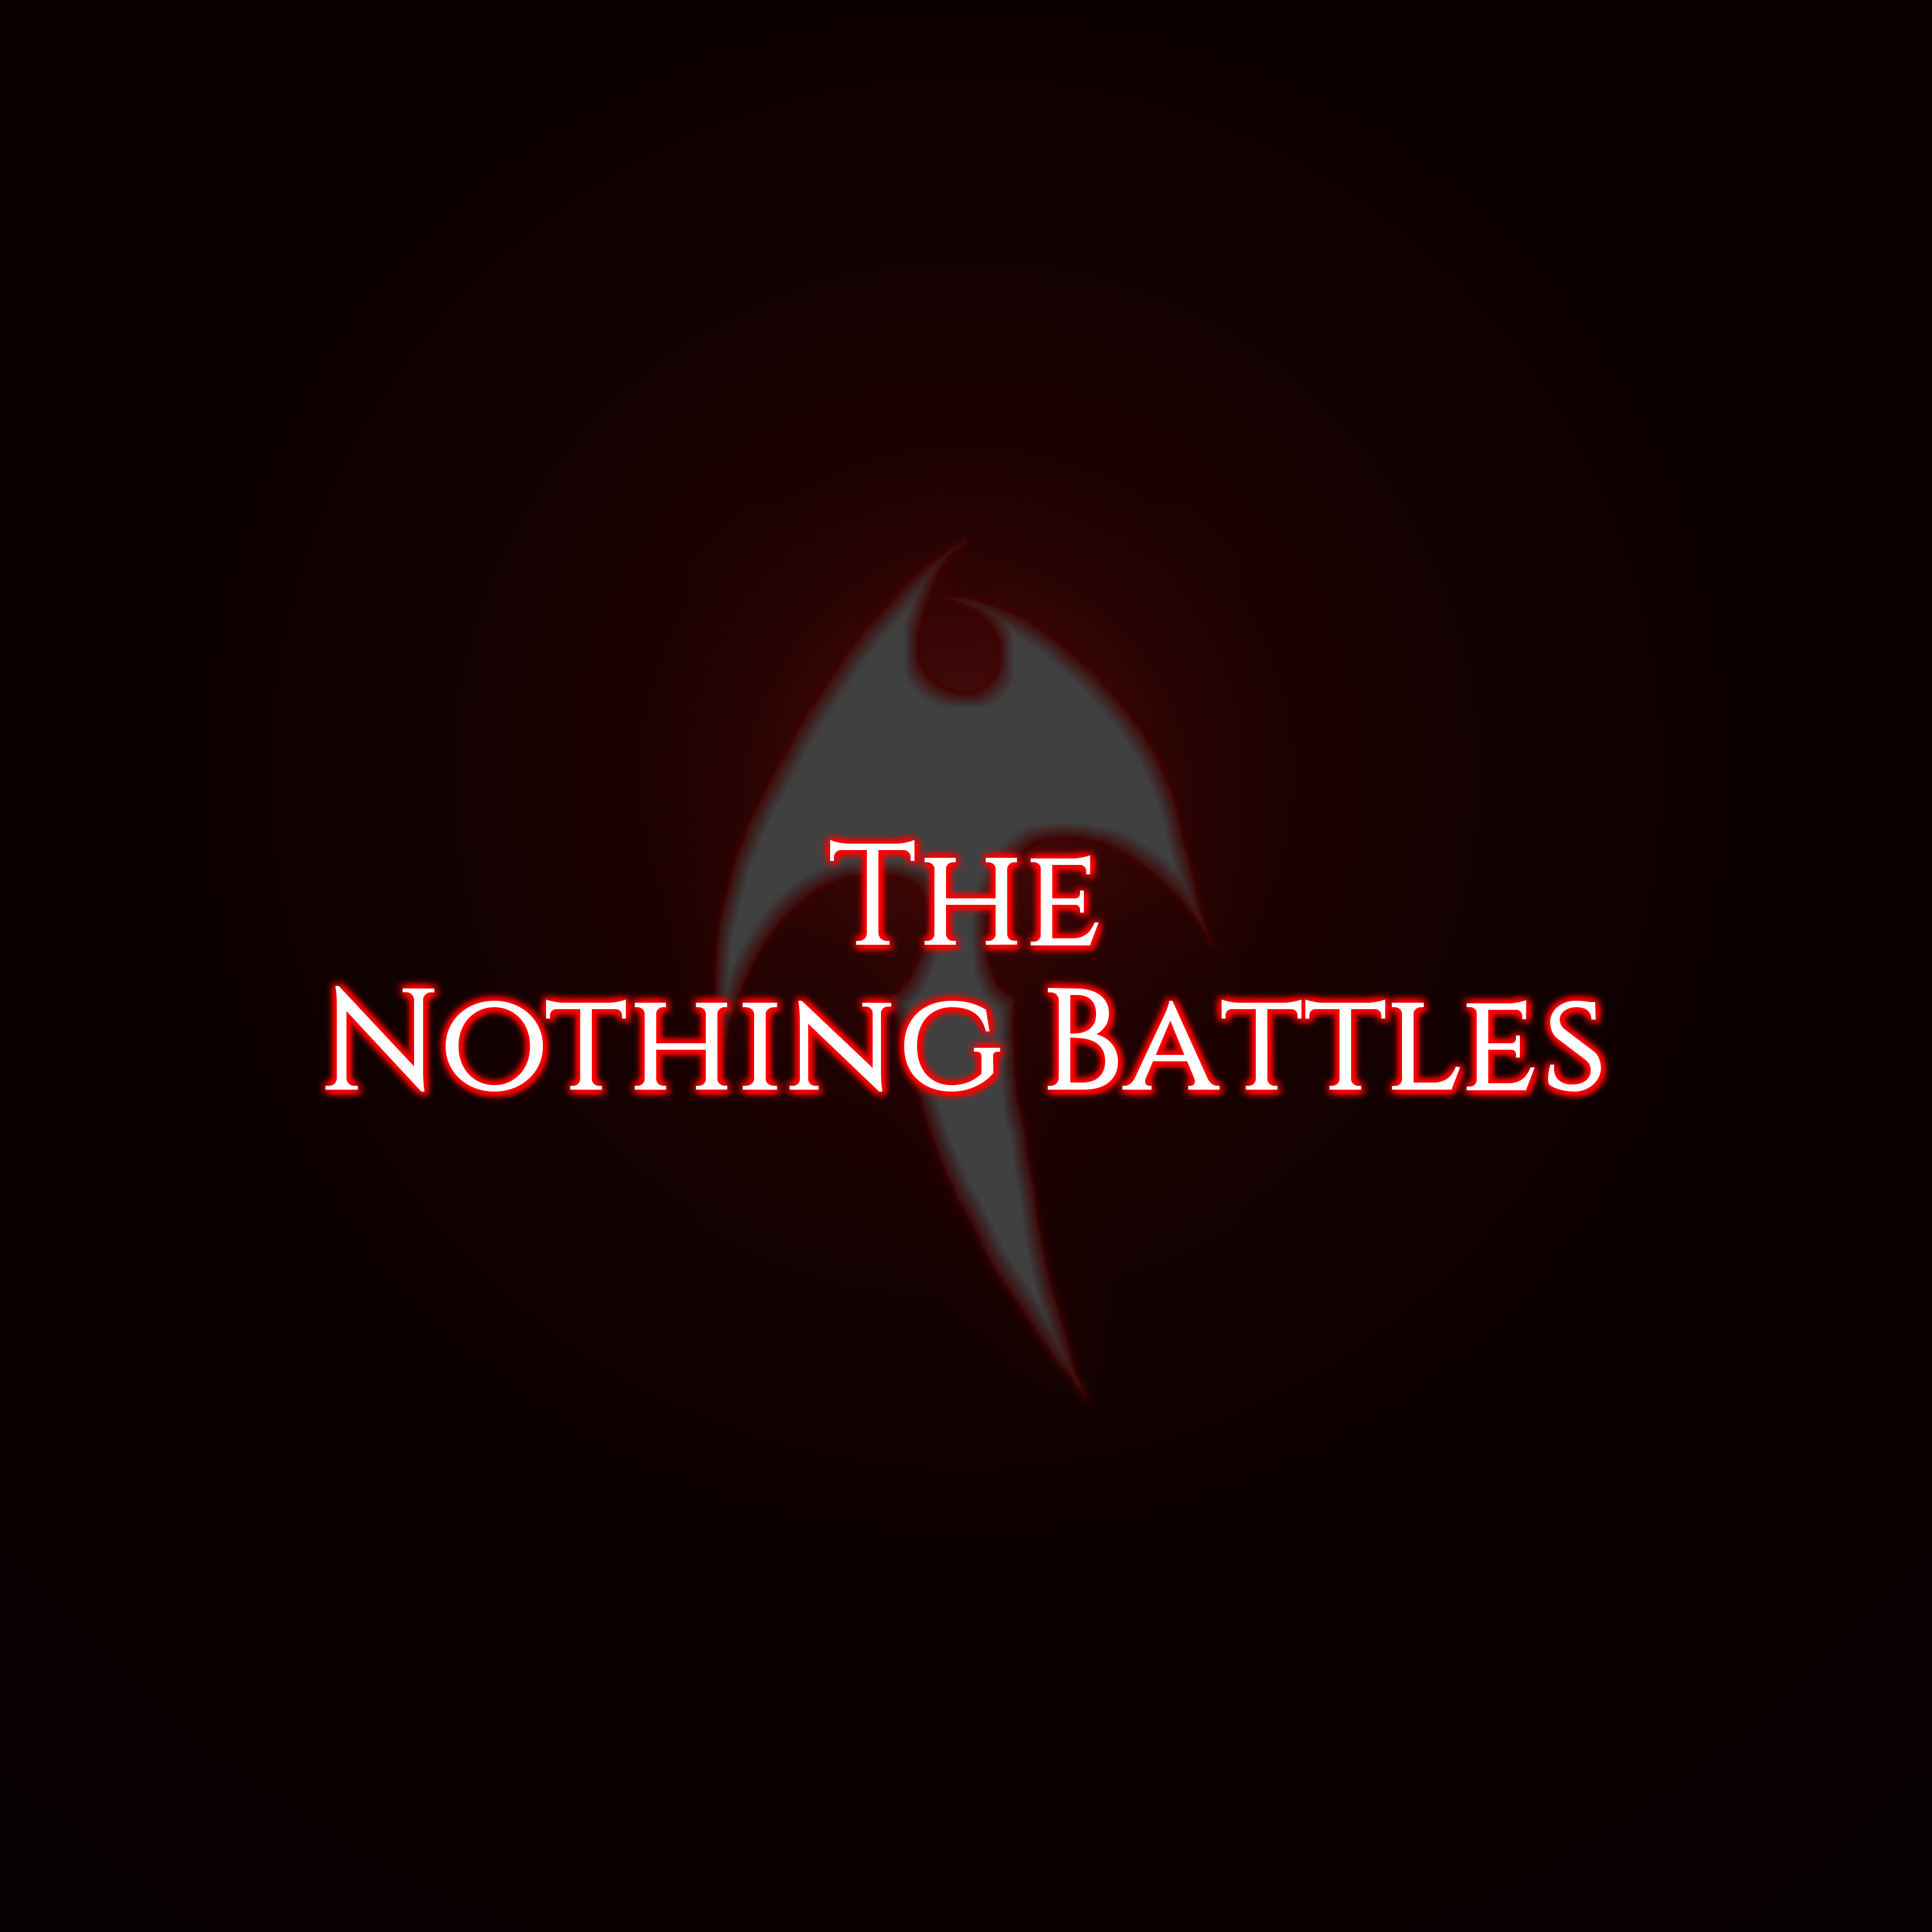 The Nothing Battles